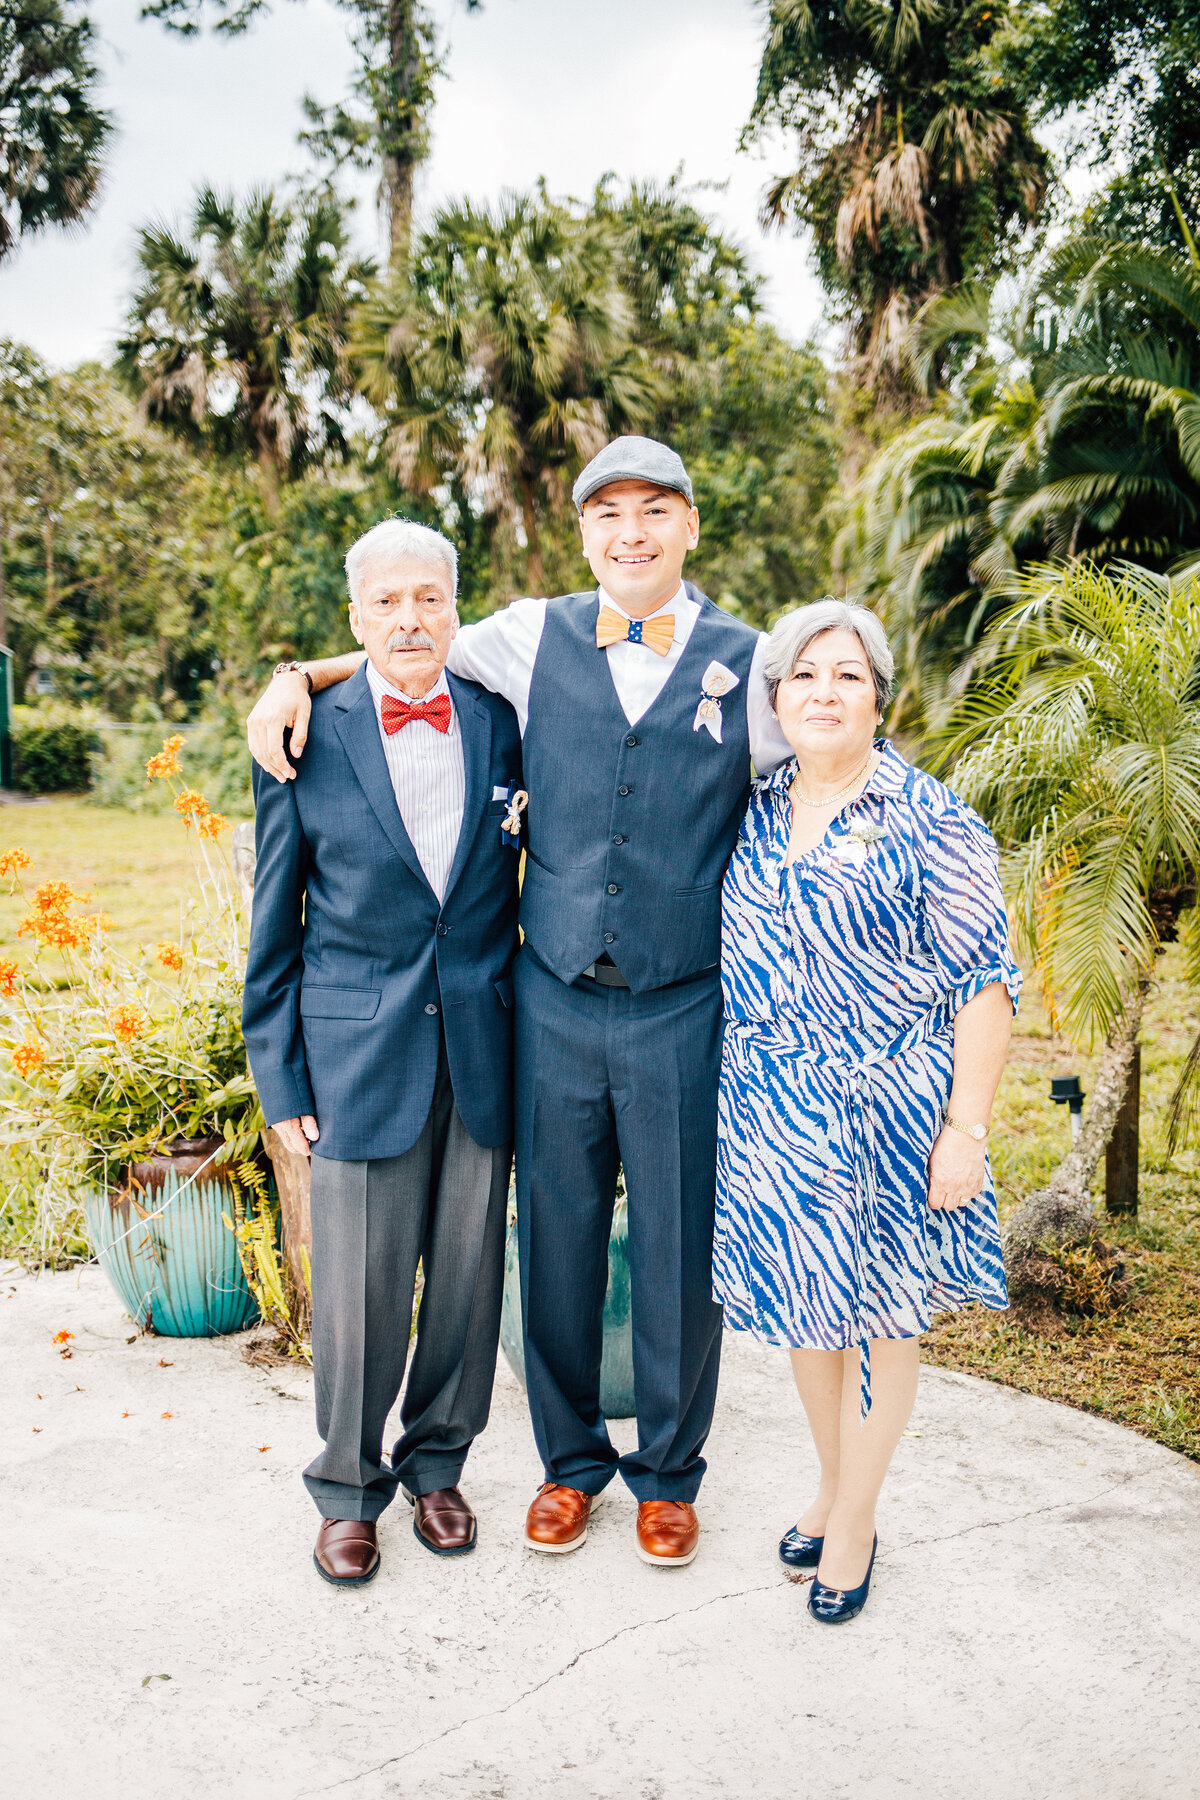 Kimberly_Hoyle_Photography_Marrero_Millikens_Reef_Wedding-24